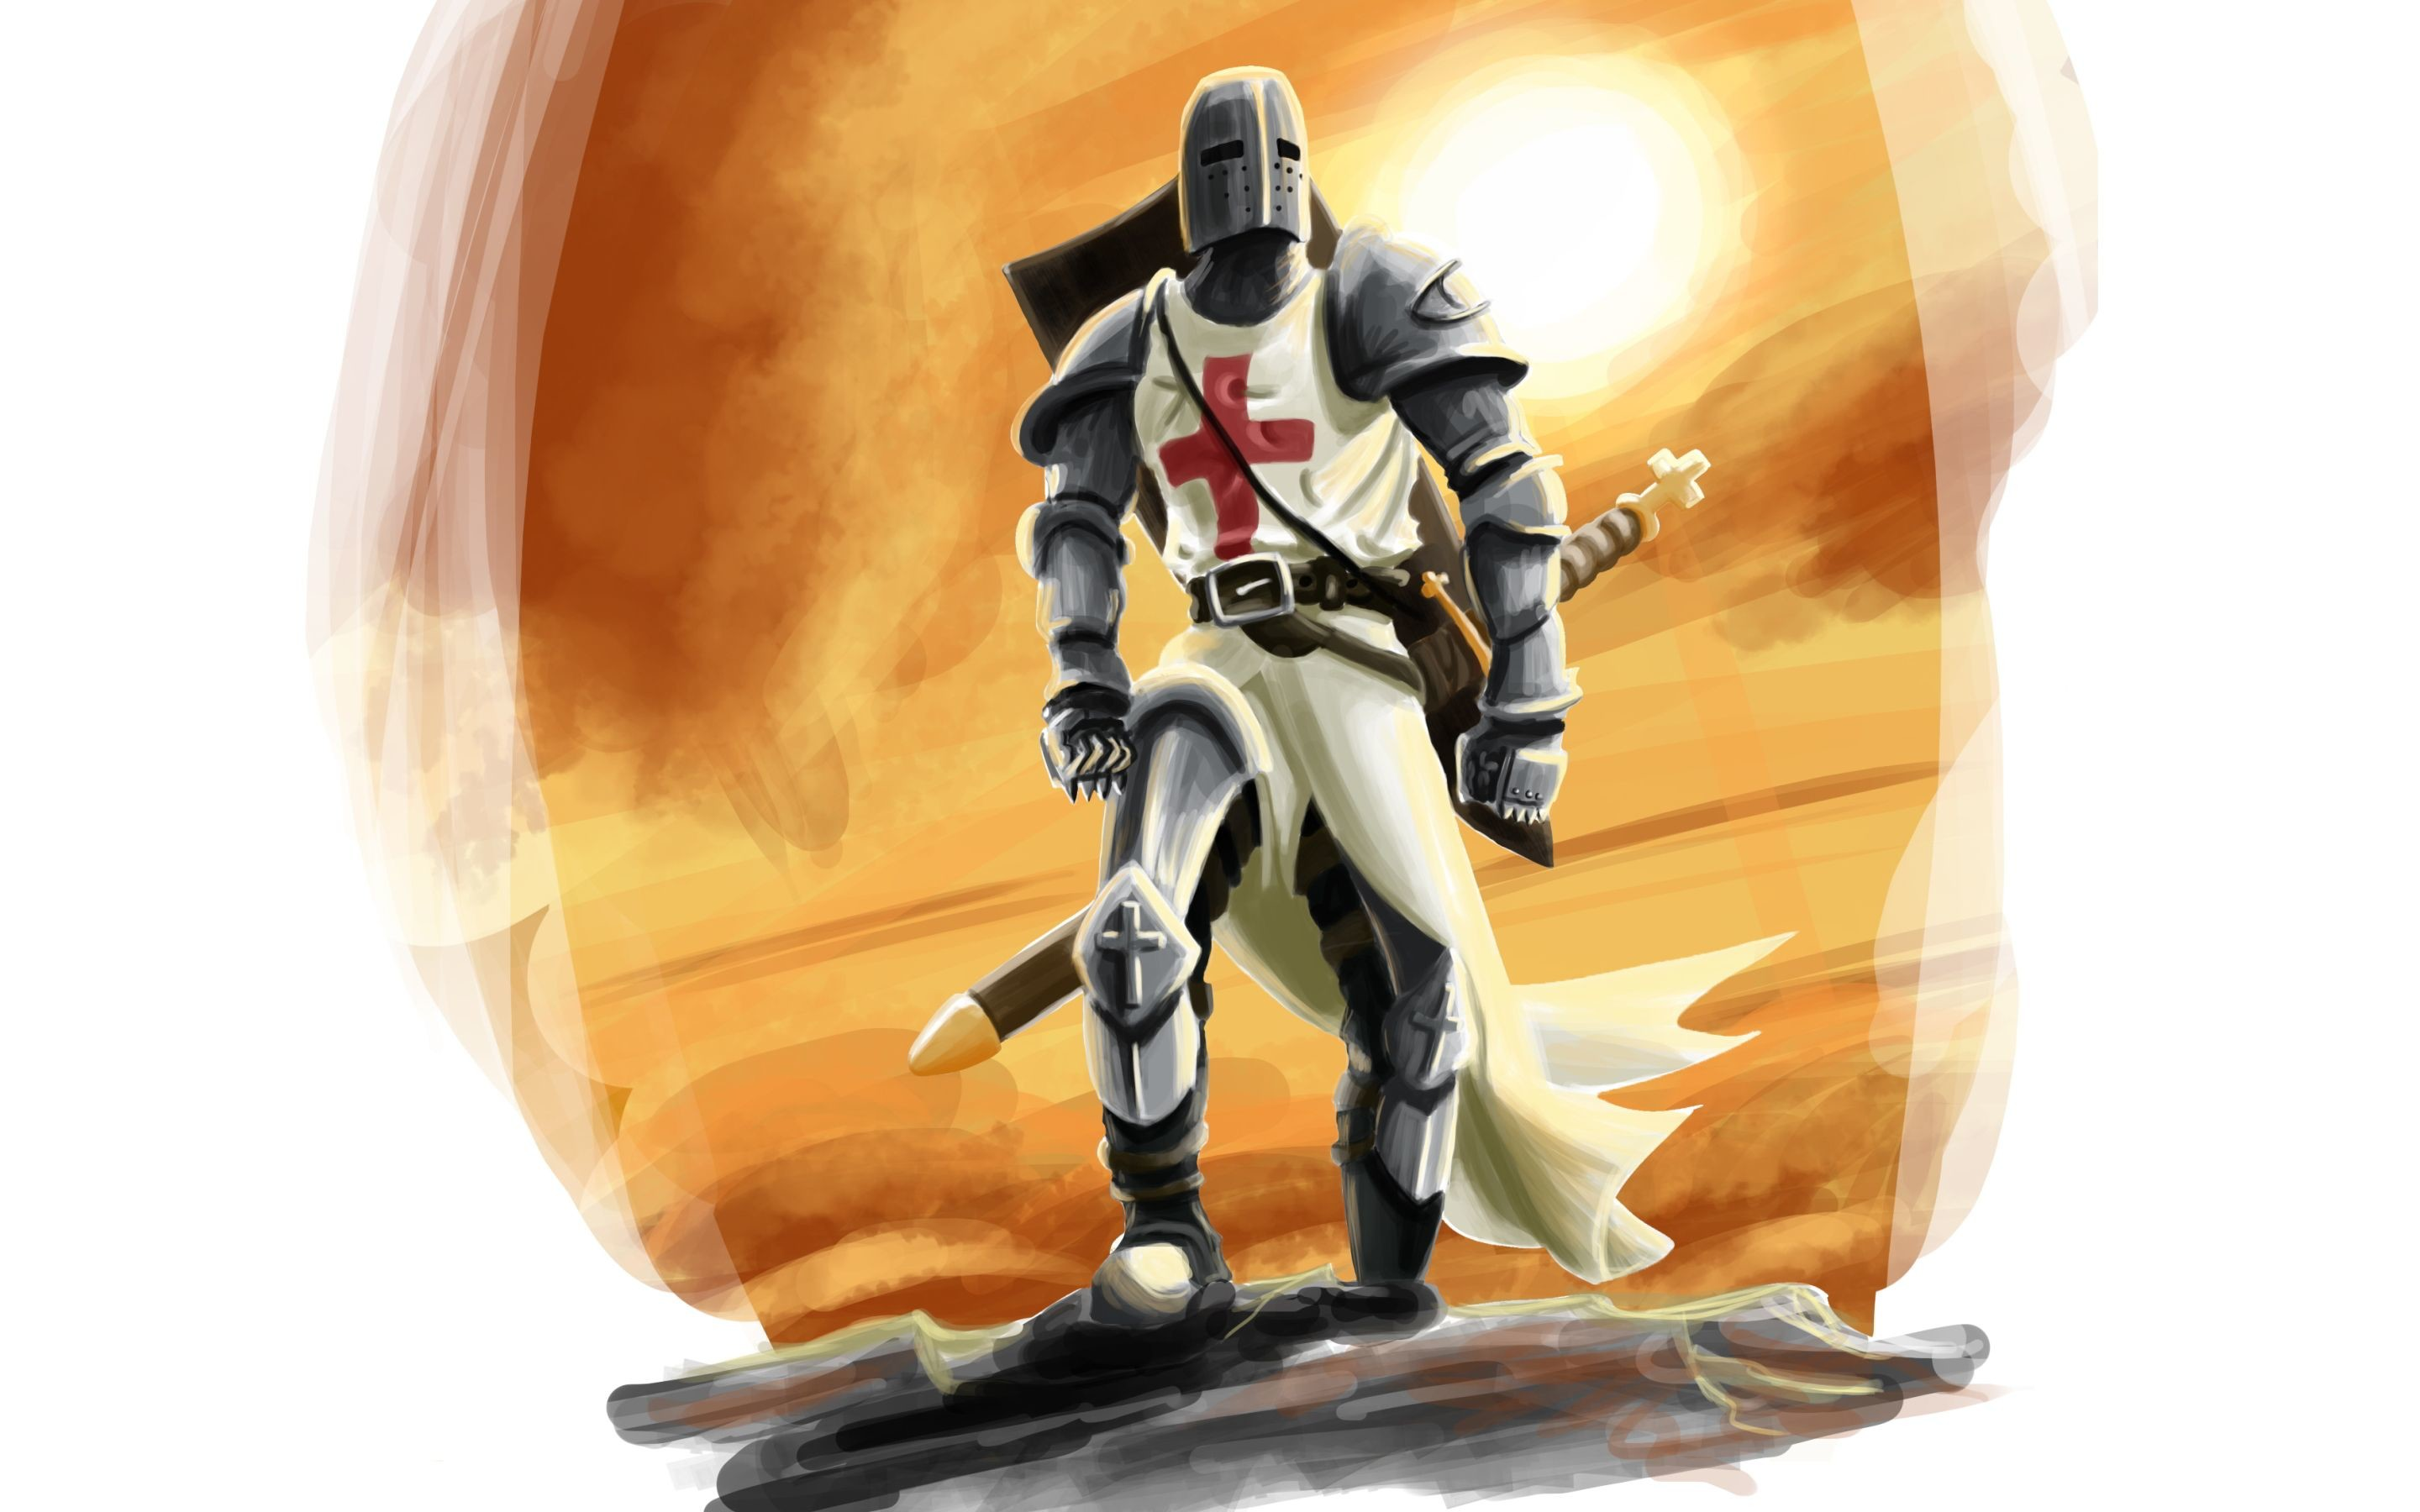 Res: 2880x1800, Templar knight Wallpapers | Pictures